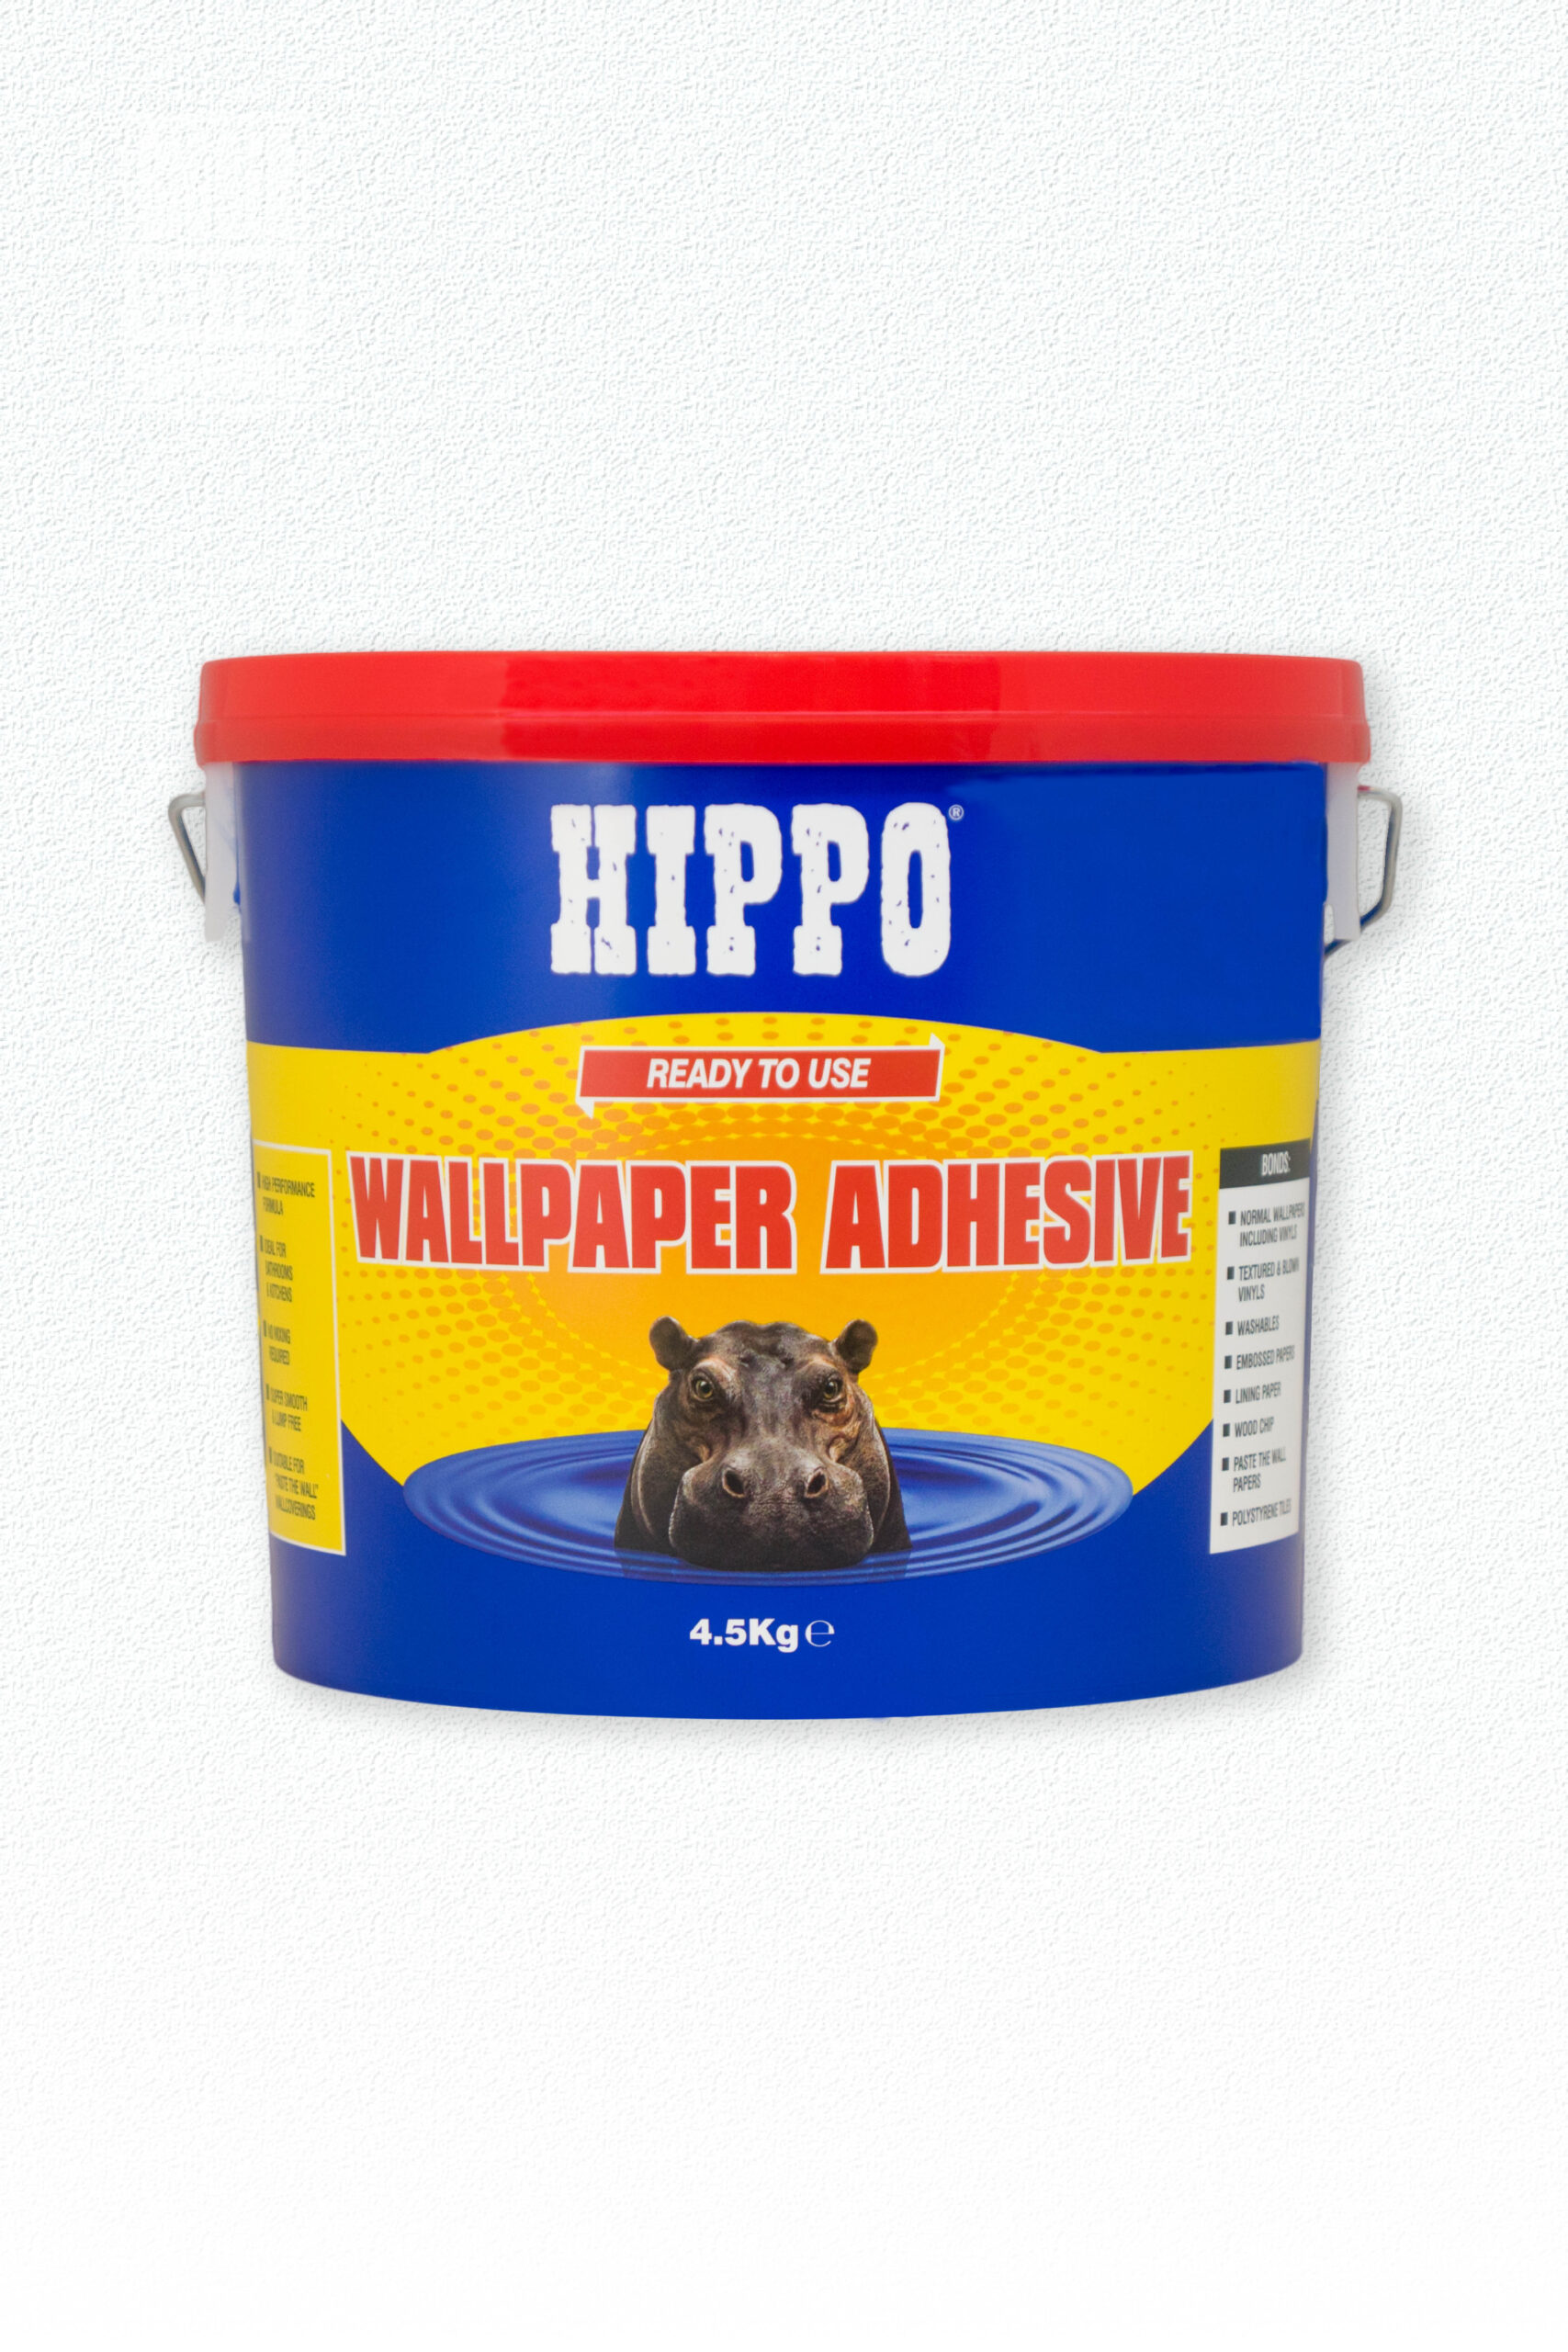 Ready To Use Wallpaper Adhesive - Hippo